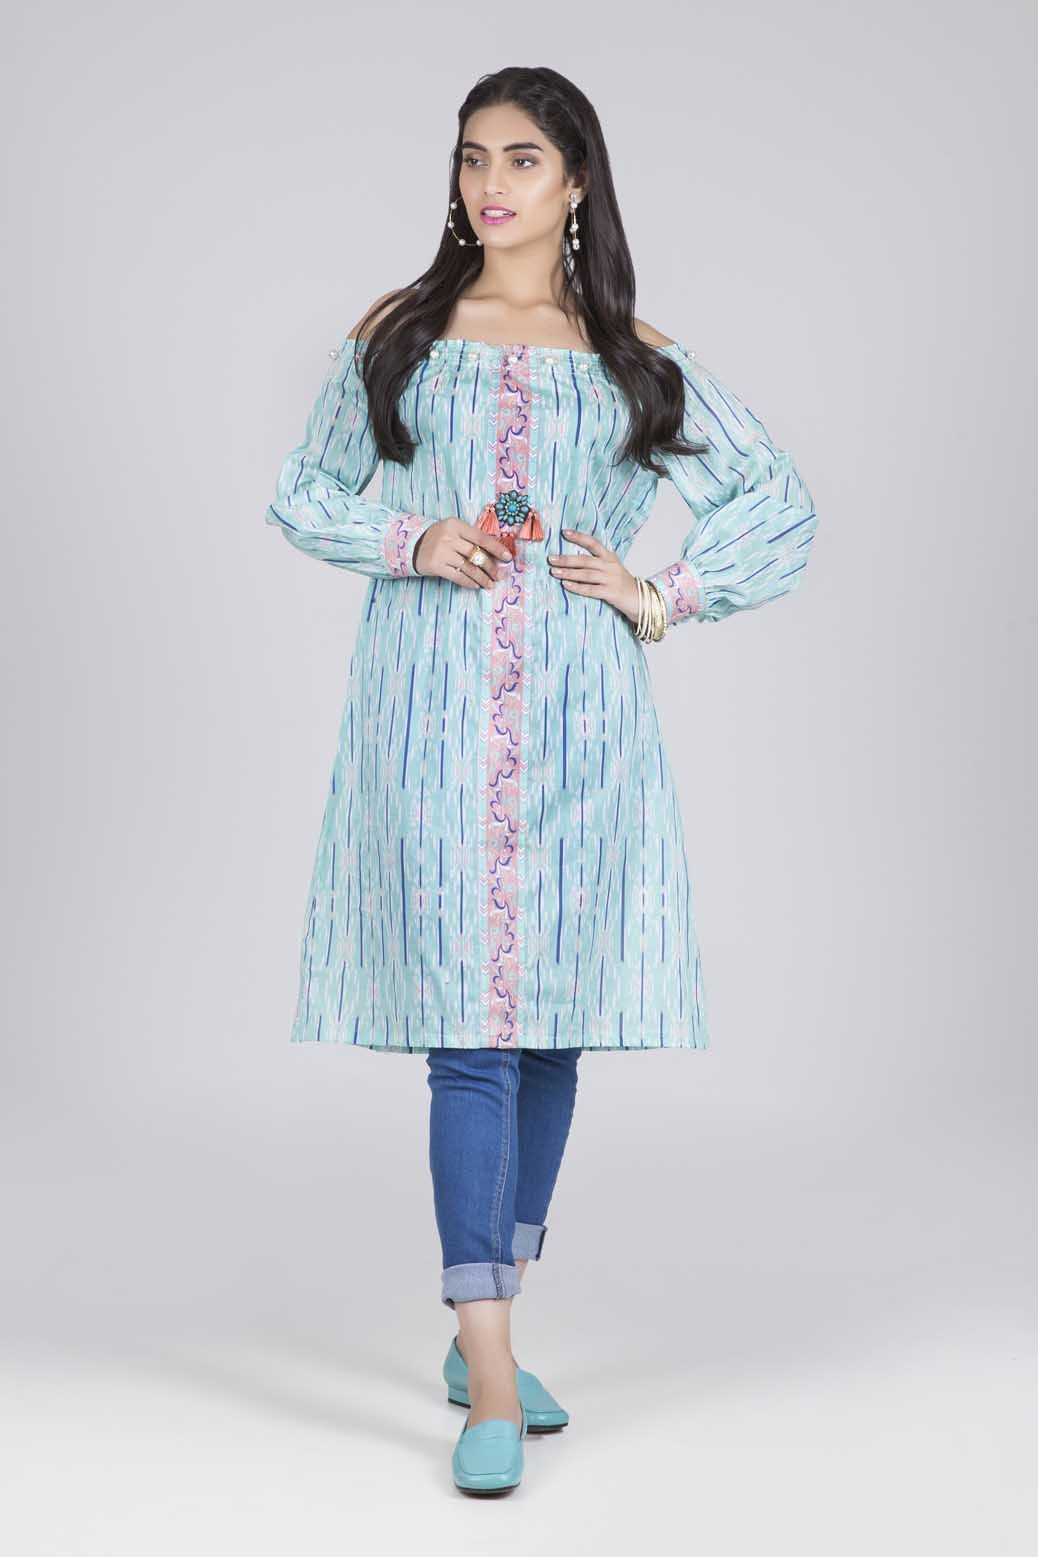 Bonanza Satrangi - Aqua Chintz - 1 PC